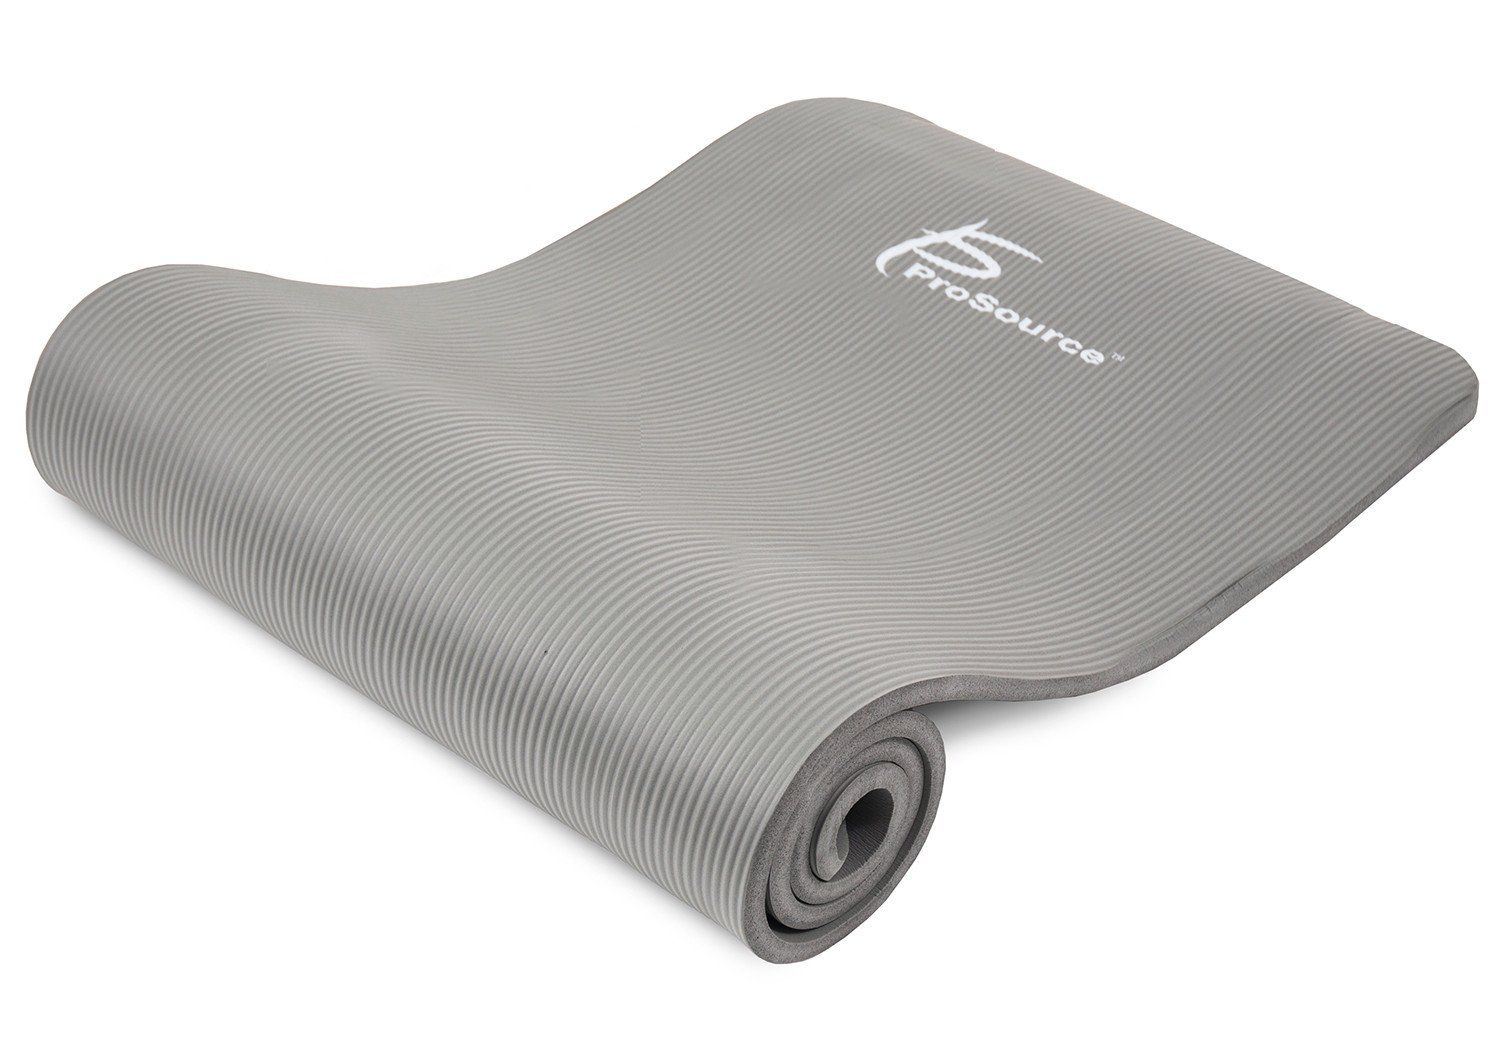 Extra Thick Yoga And Pilates Mat 1 2 Inch Thick Yoga Mats Mat Pilates Extra Thick Yoga Mat